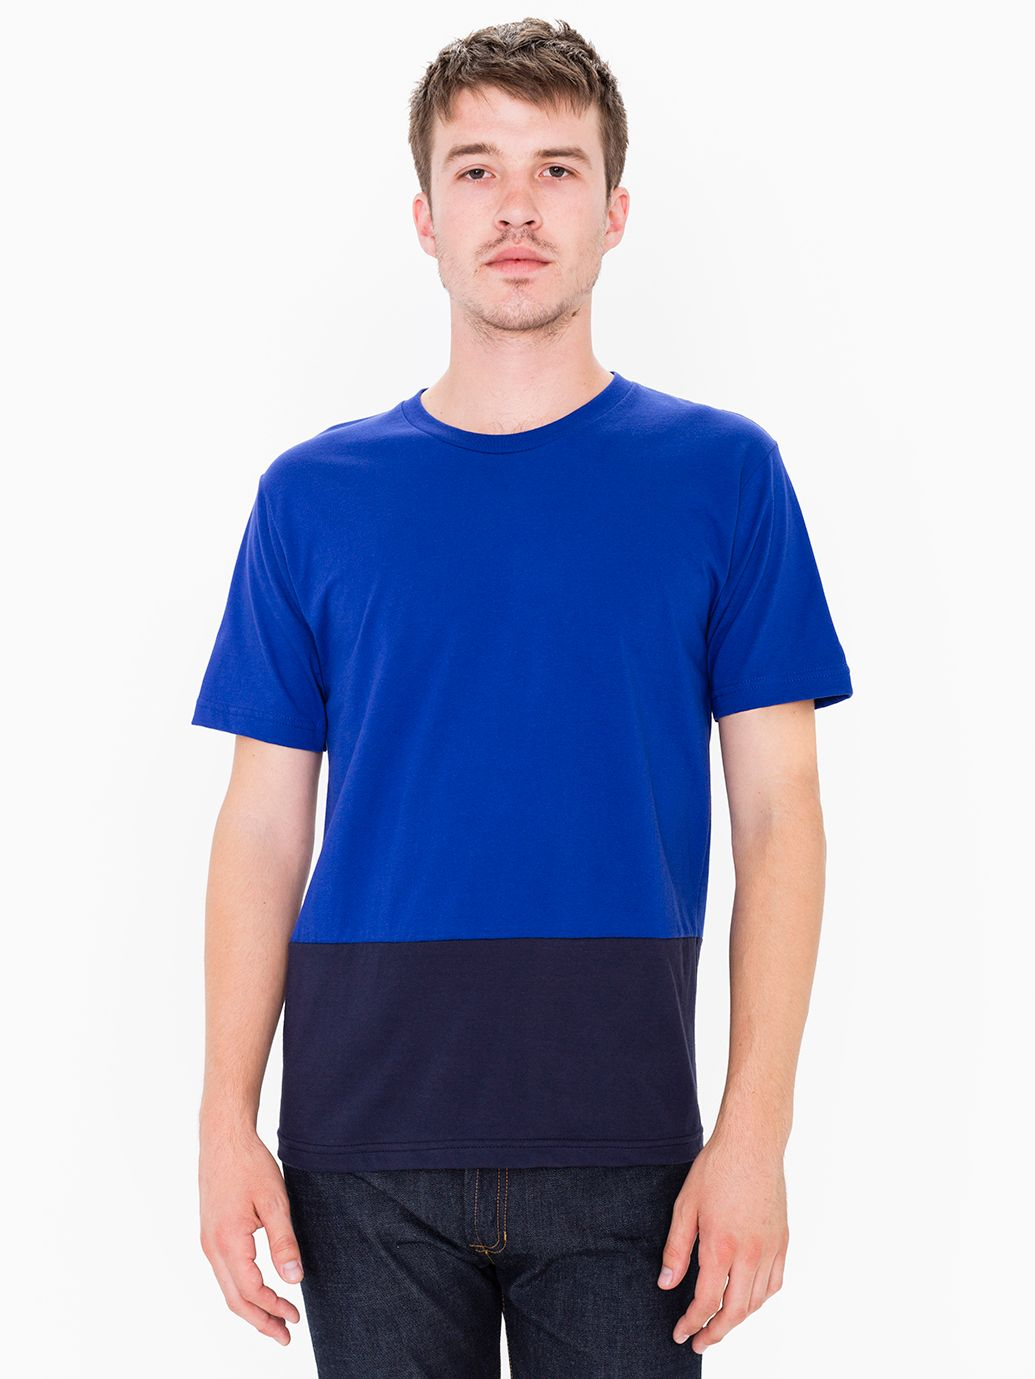 http://s7d9.scene7.com/is/image/AmericanApparel/rsa2431_lapis_navy